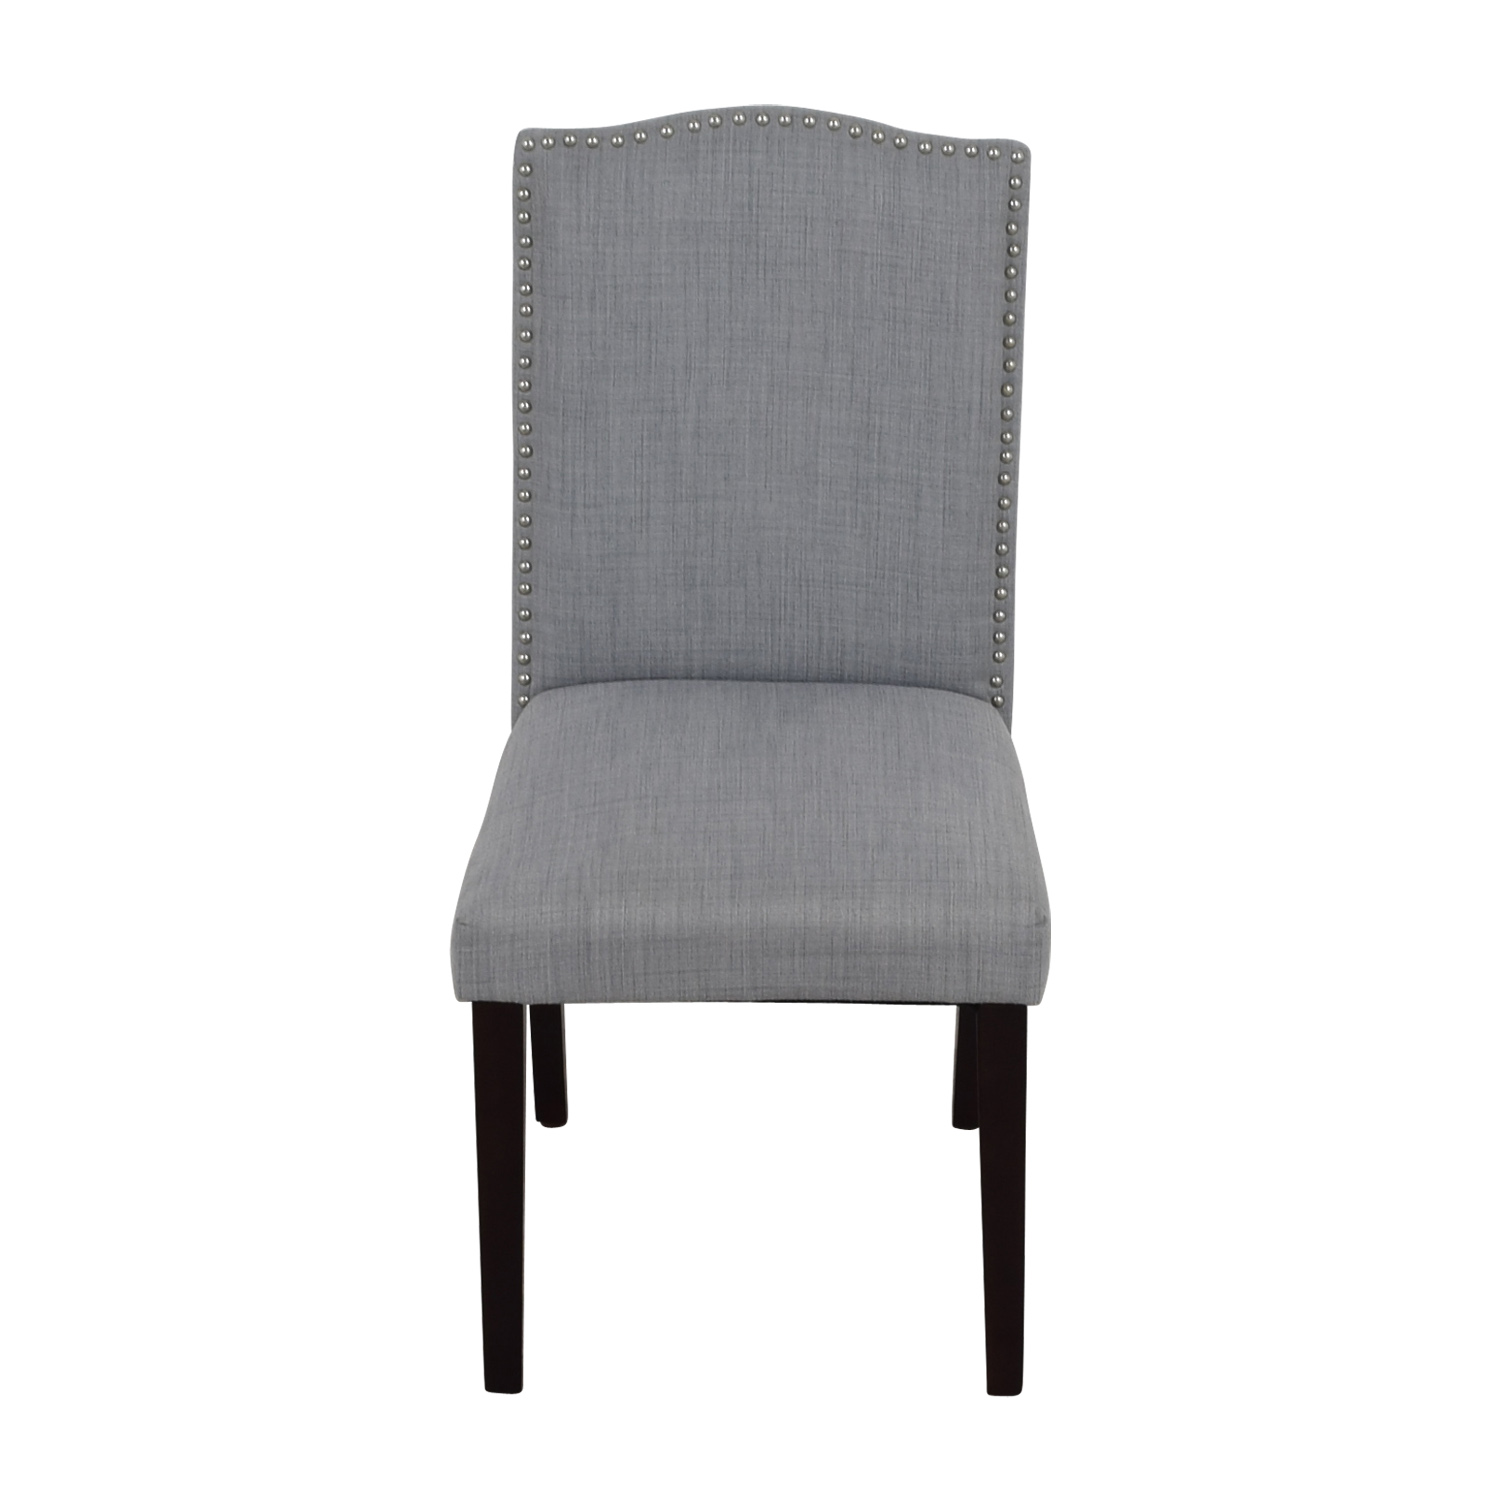 Target Office Chairs 78 Off Threshold Target Threshold Brookline Grey Nailhead Dining Chair Chairs